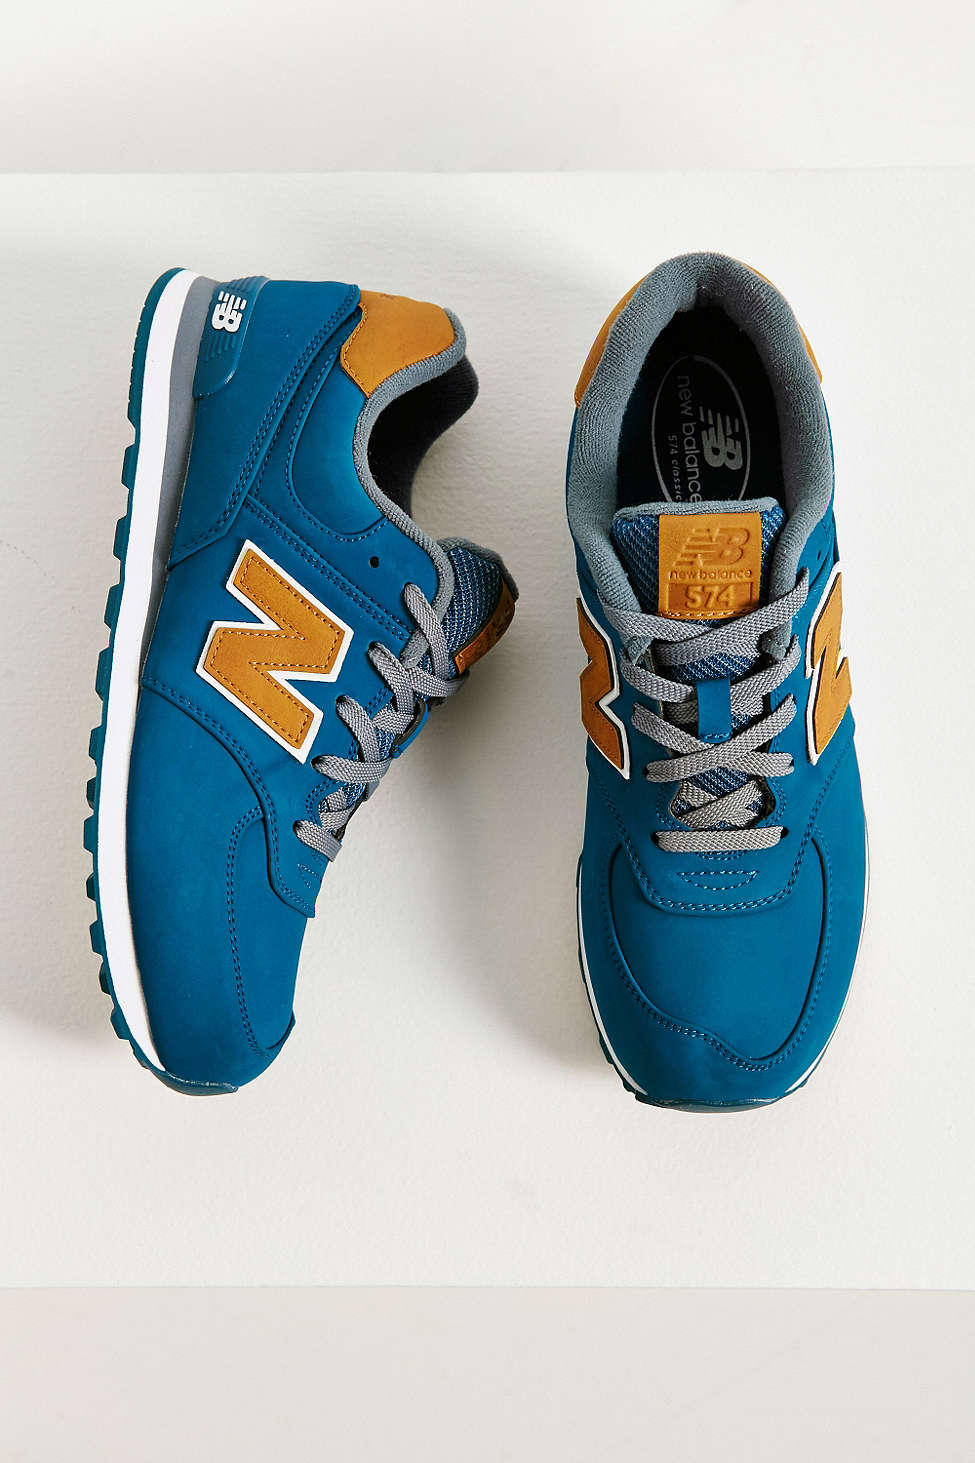 sale retailer f1e28 2f0e0 New Balance 574 Lux Sneaker - Urban from Urban Outfitters